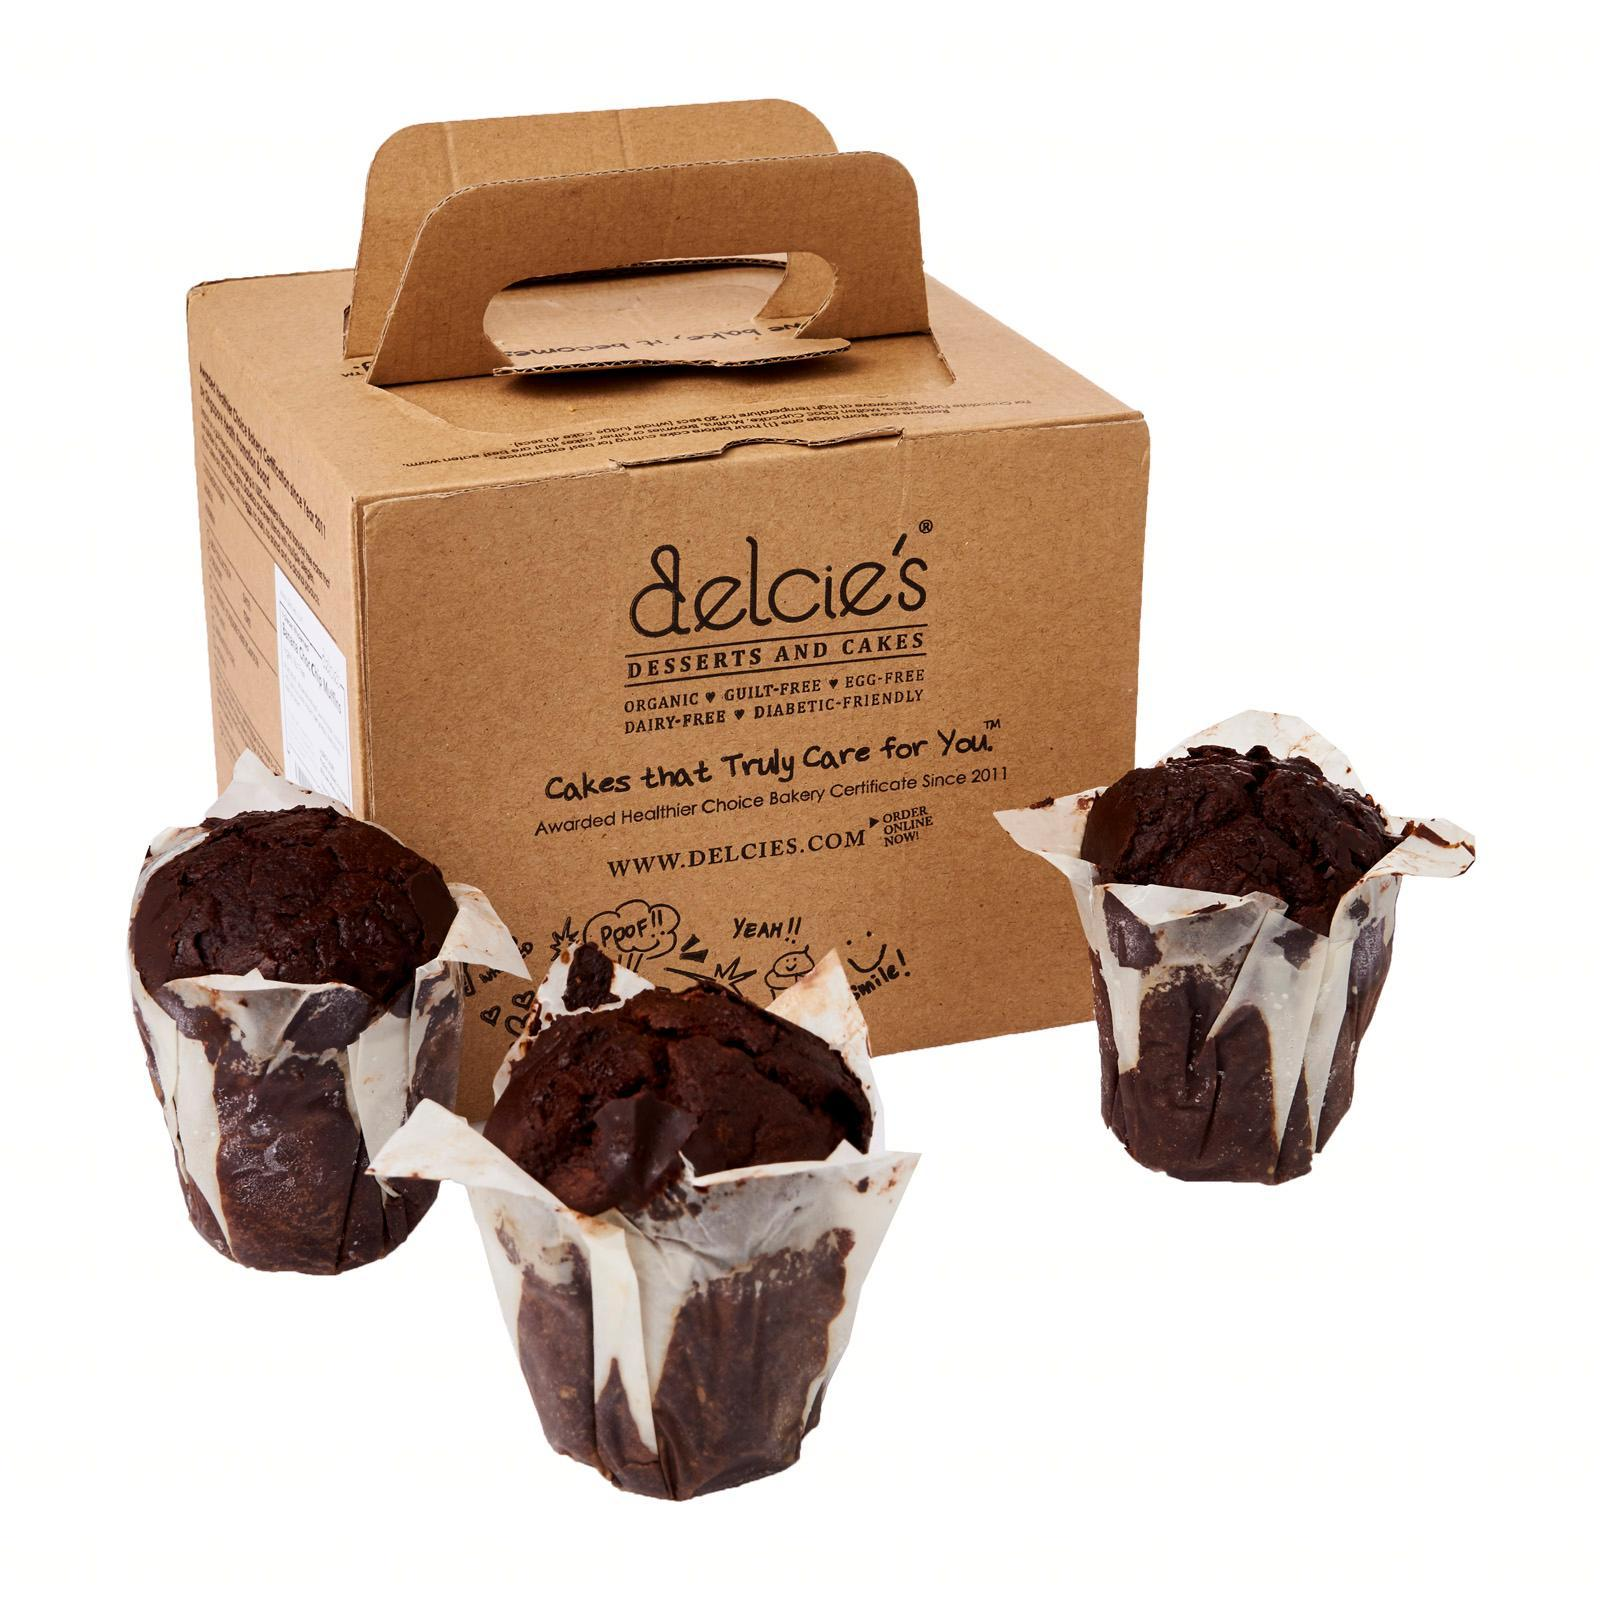 Delcie's Desserts and Cakes Vegan Gluten-Free Nut-Free Refined Sugar-Free Double Chocolate Chip Muffins - Frozen